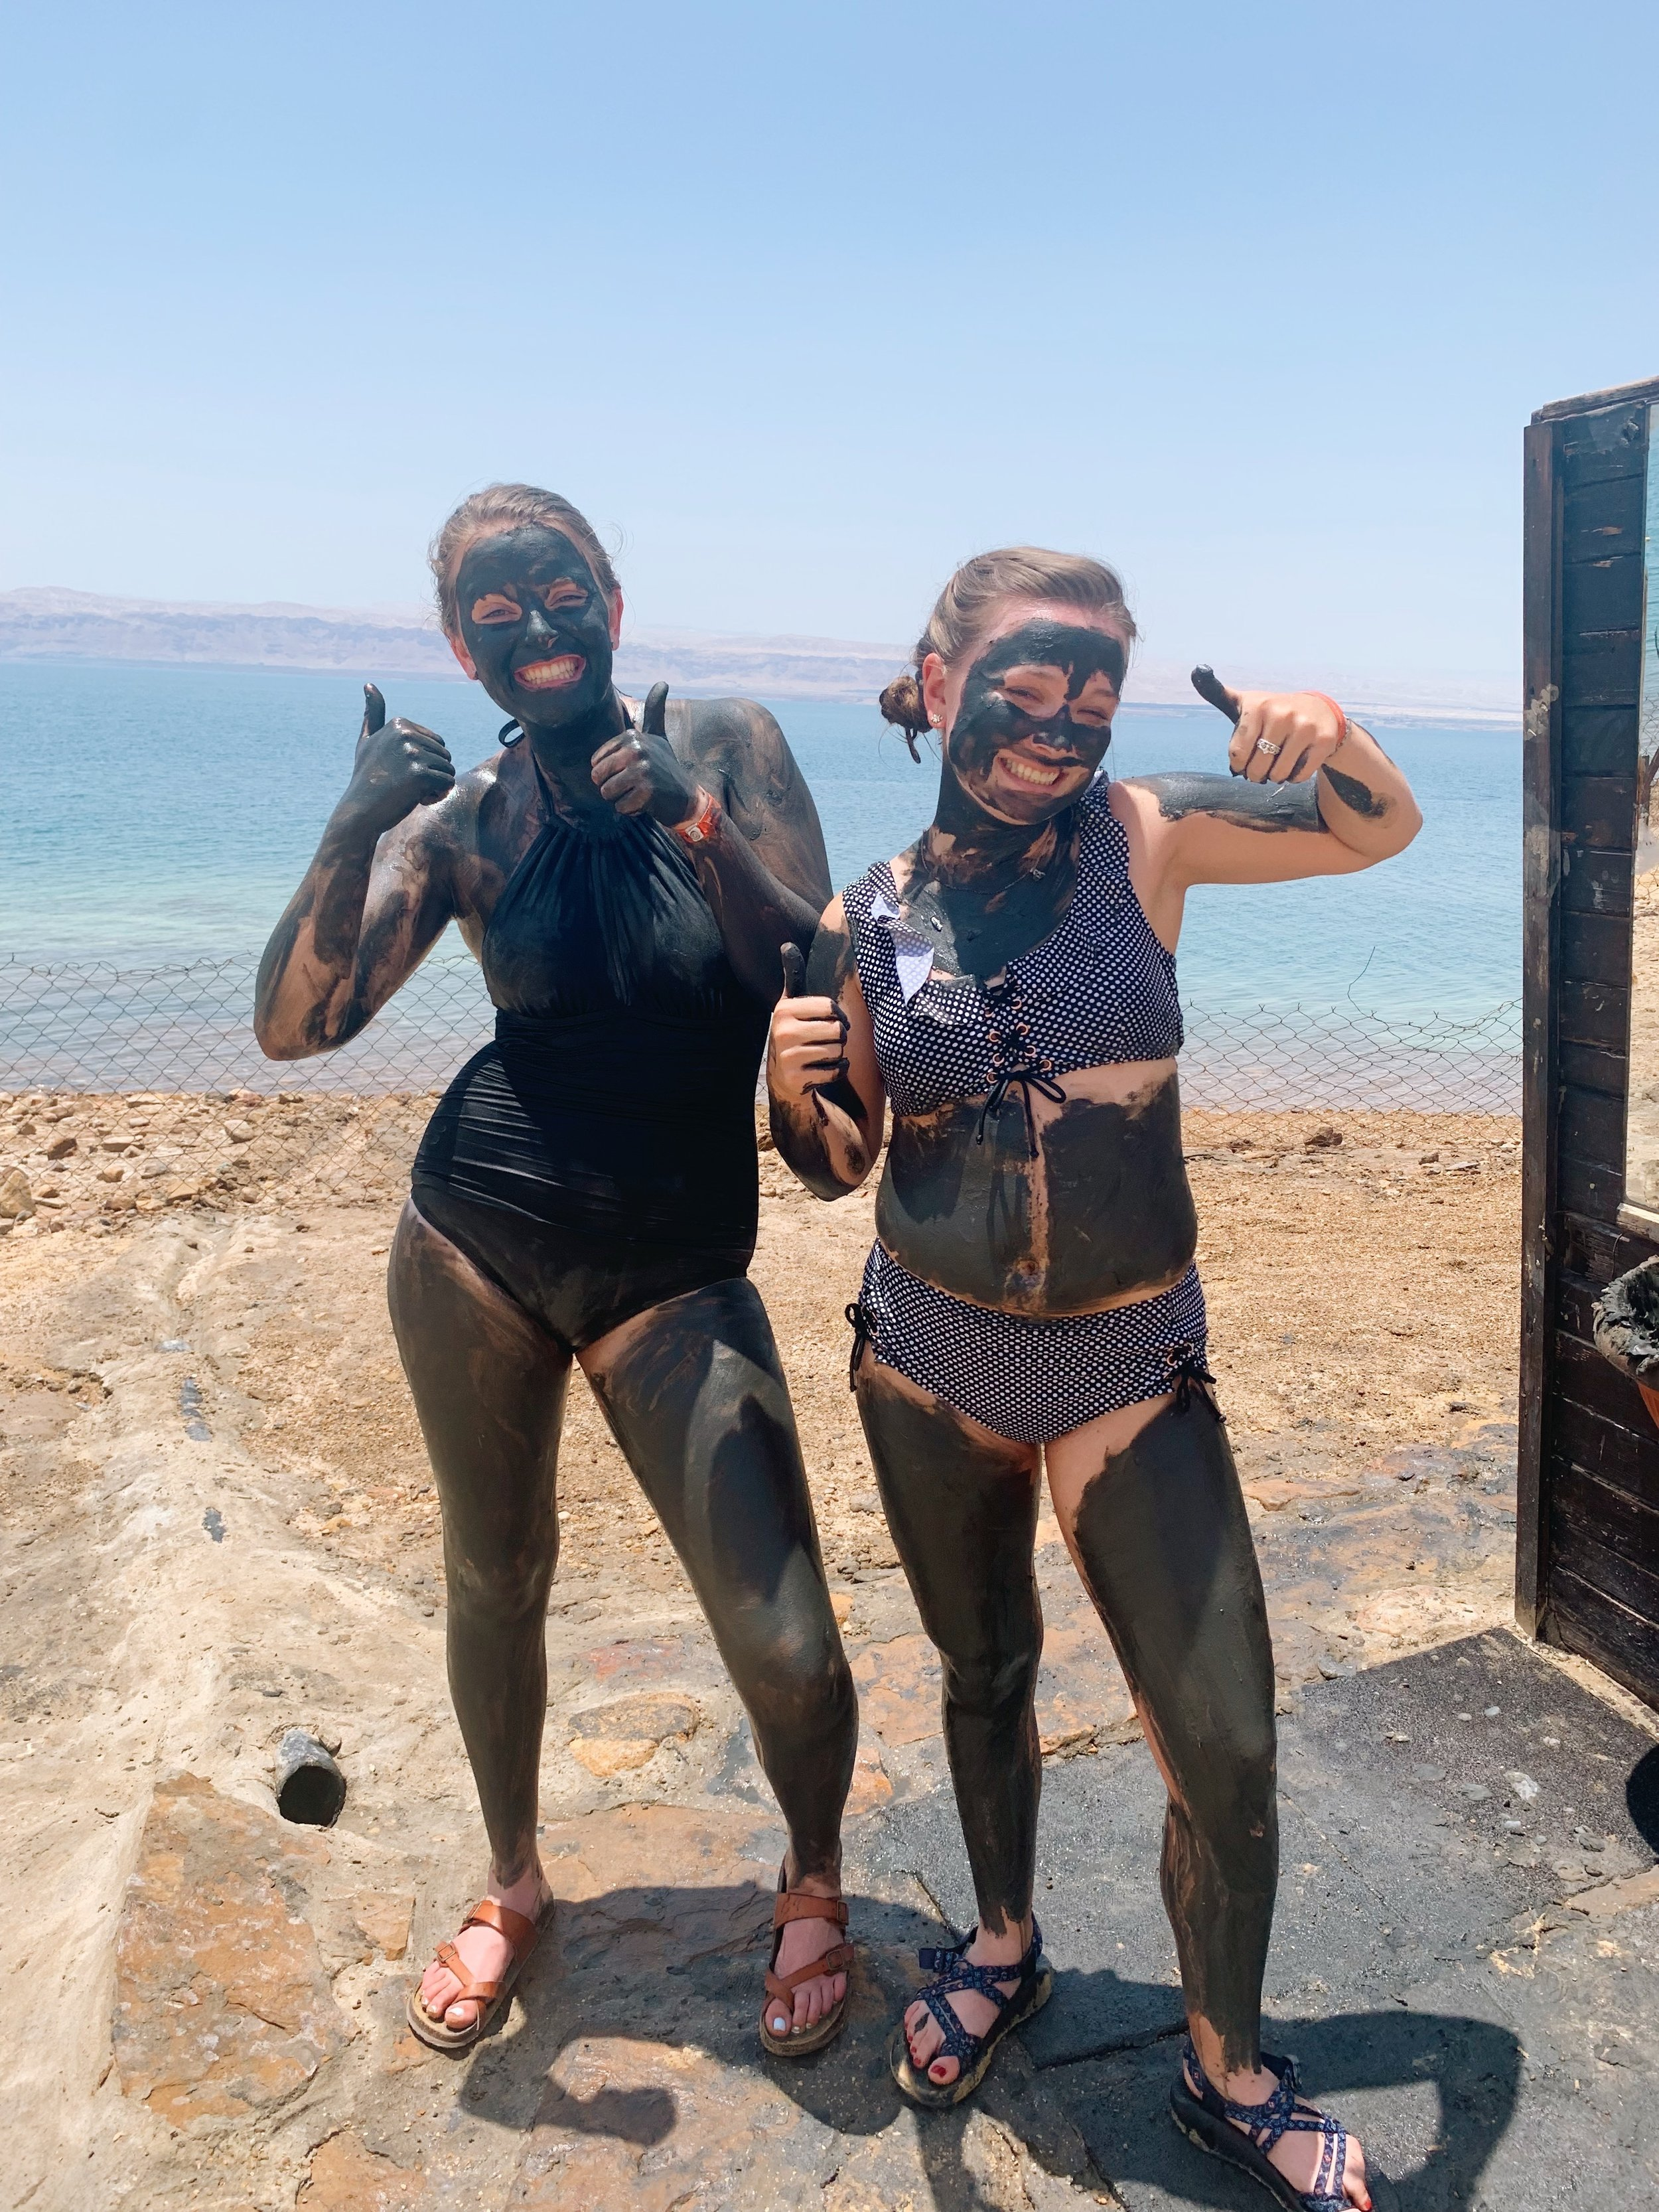 The Dead Sea is another spot that is very popular for tourists to go. There are people of all walks of life there. Clothing-wise, you can honestly wear any bathing suit you like. I forgot a bathing suit and bought a two-piece with a high waist at a mall in Jordan. I felt very comfortable. Most everyone else that was in my group wore a one piece. I actually ended up going back with my mom and sister and my sister wore a regular bikini and she was more than comfortable. If you are not by the pool or the sea, then you may wear some more clothes and you will need a pair of pants/skirt to get and to and from the hotel. Photo credit: Jones, 2019